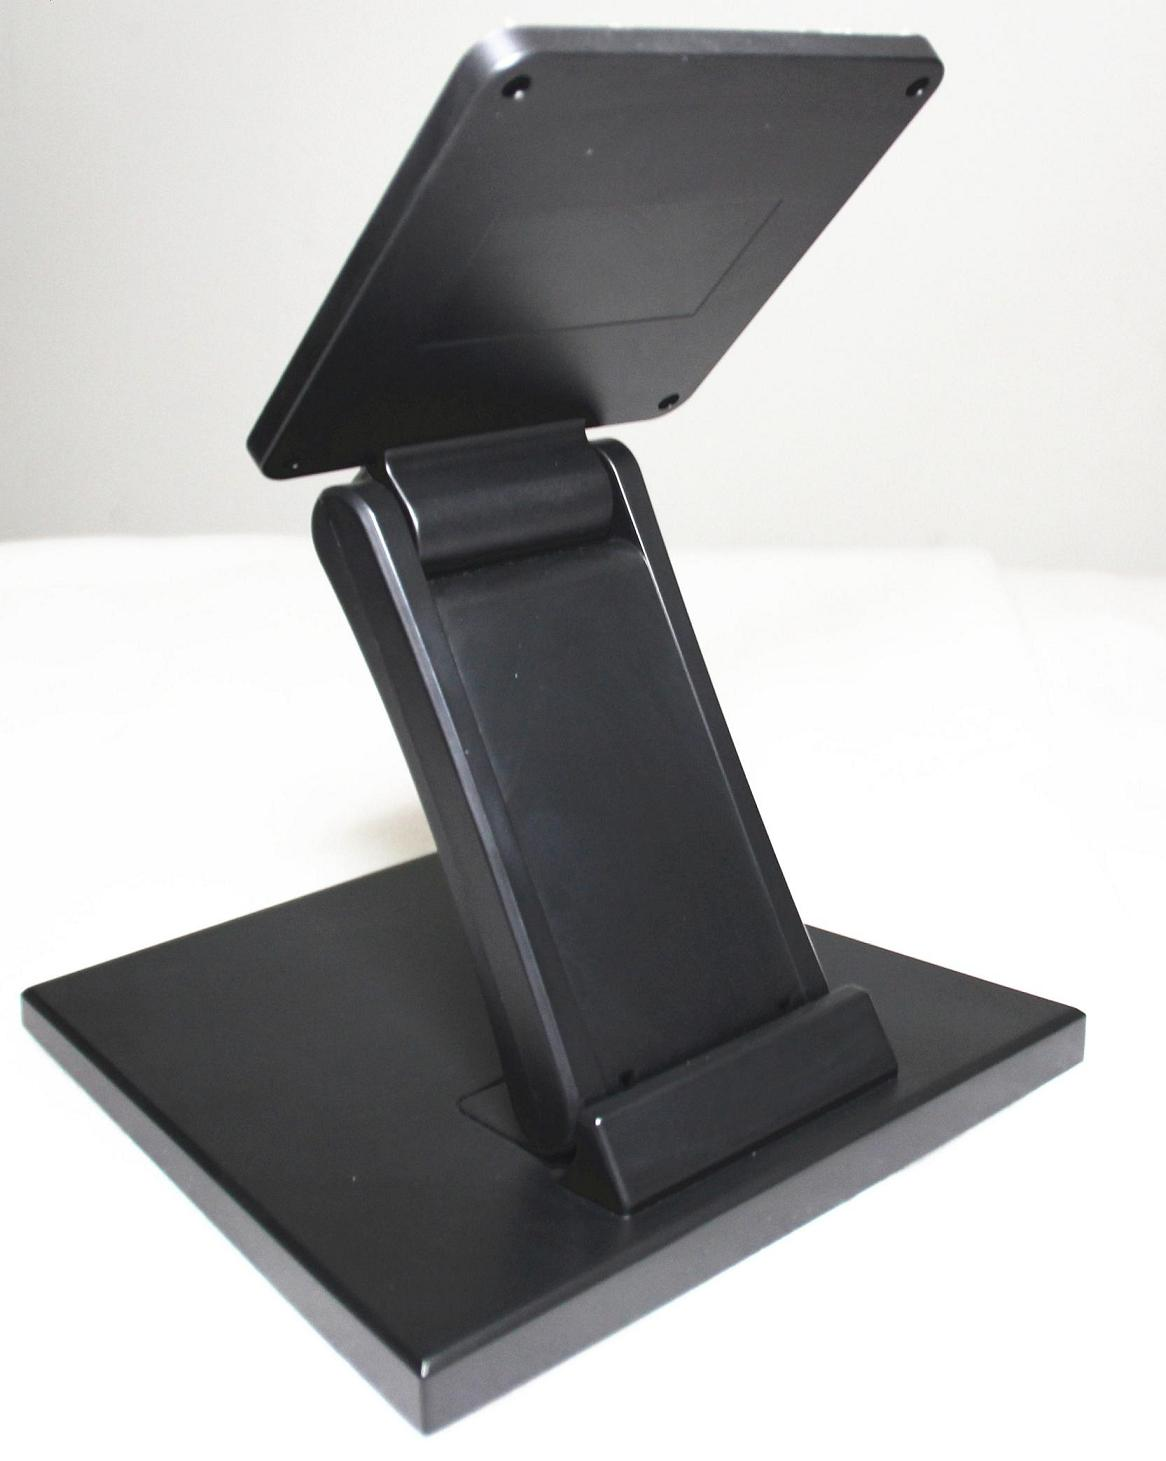 TV08 TV or Monitor Universal Stand for Display up to 27 TV